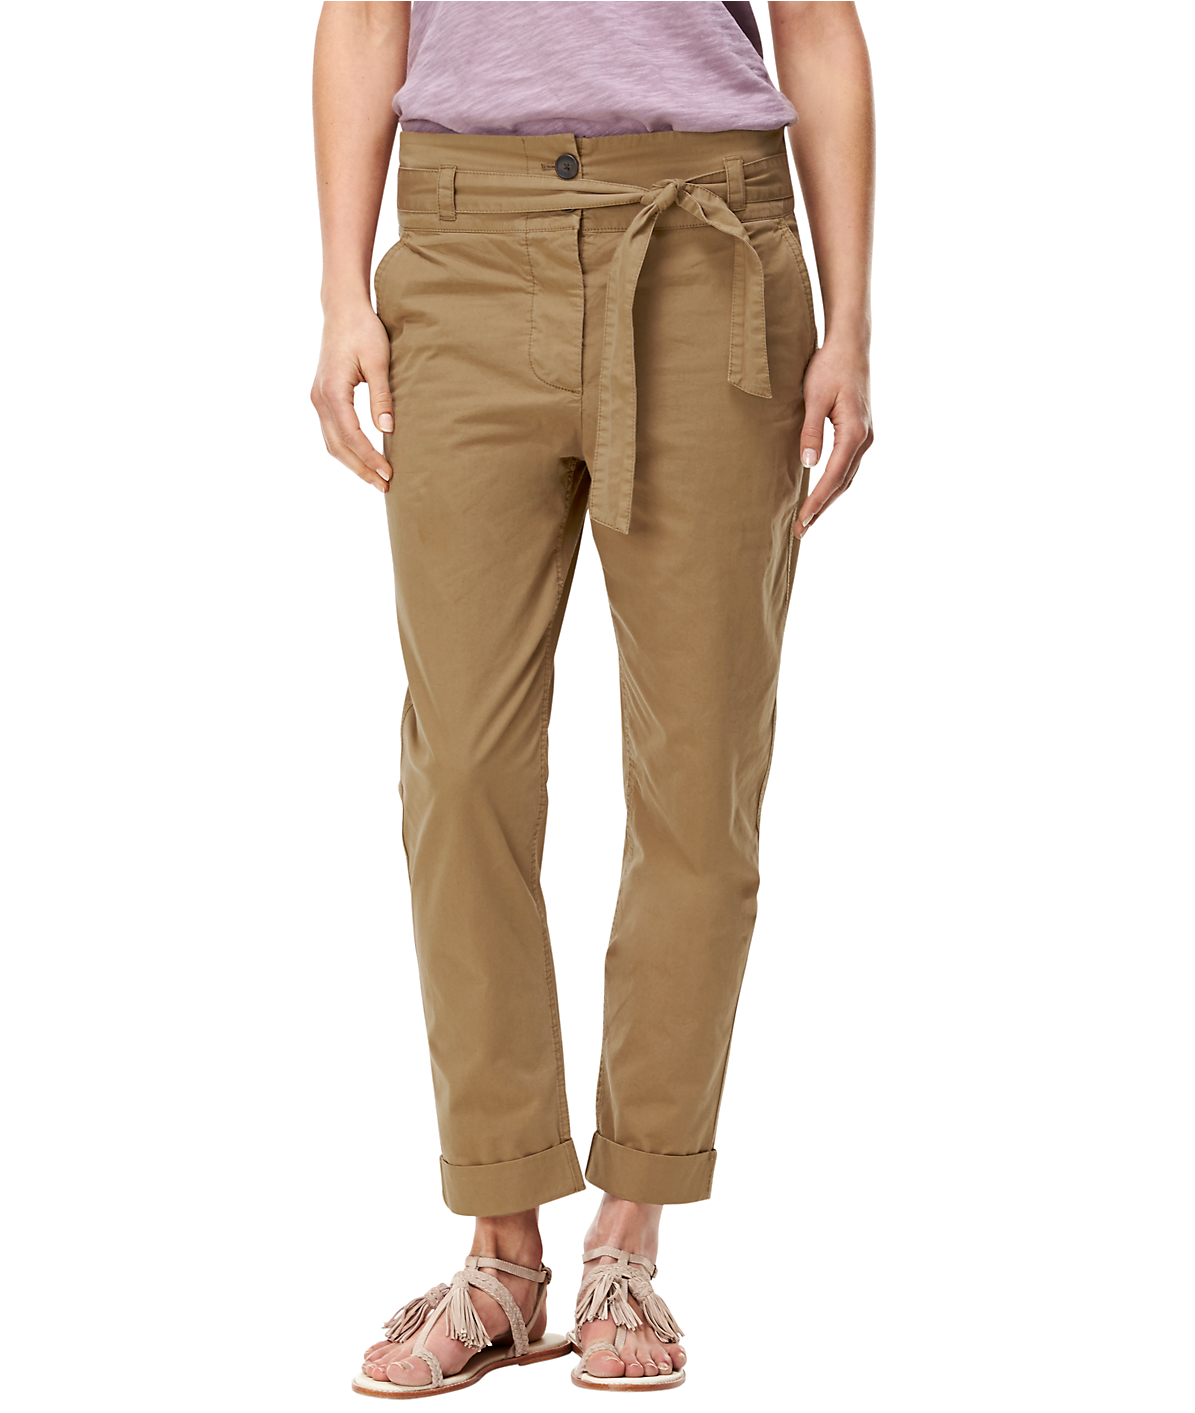 Twill trousers with a tie-around belt F2164100 from liebeskind